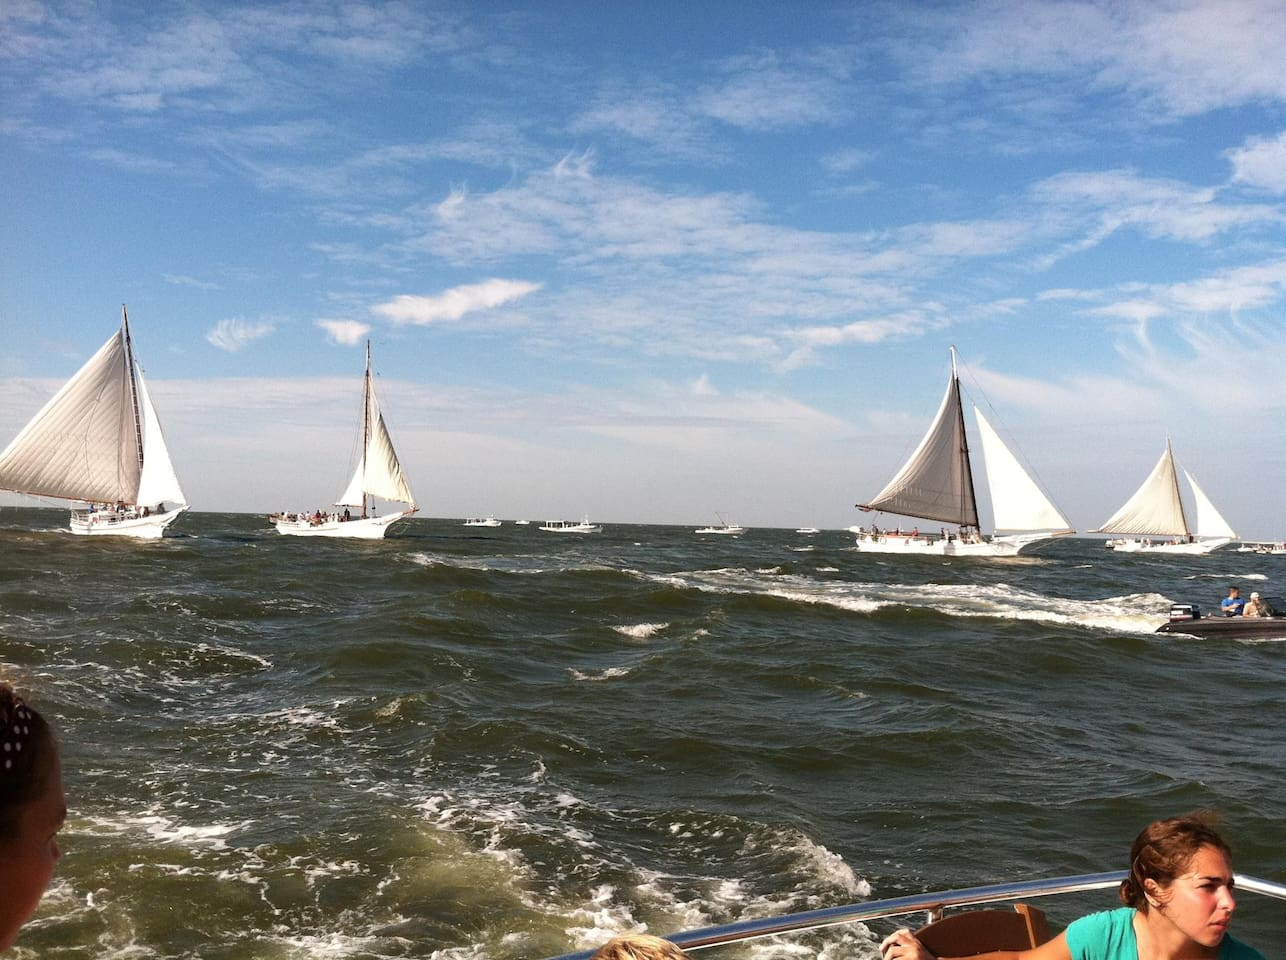 Photo's coming soon. This is at the Labor Day Deal Island Skipjack race.